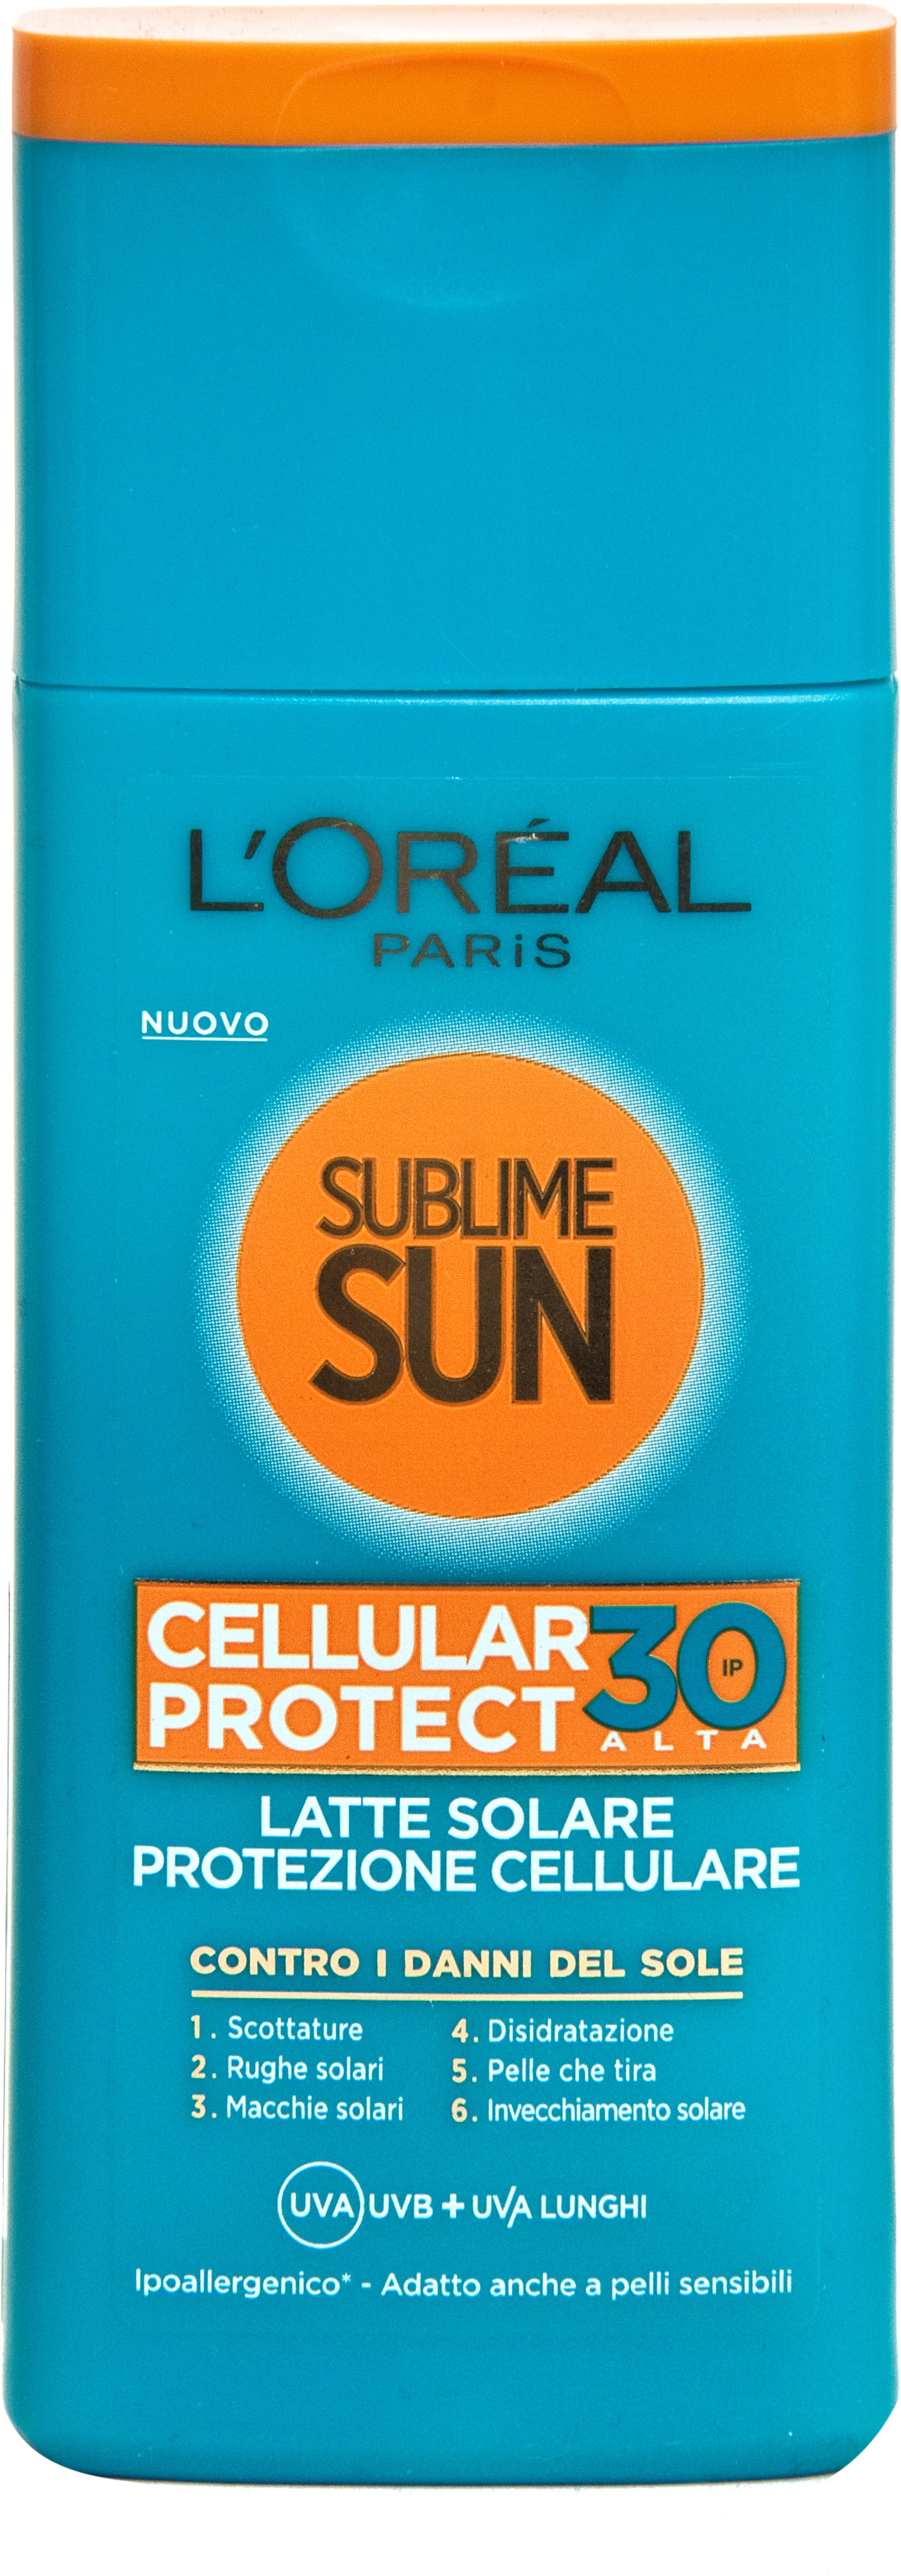 Sun sublime  cellular Protect